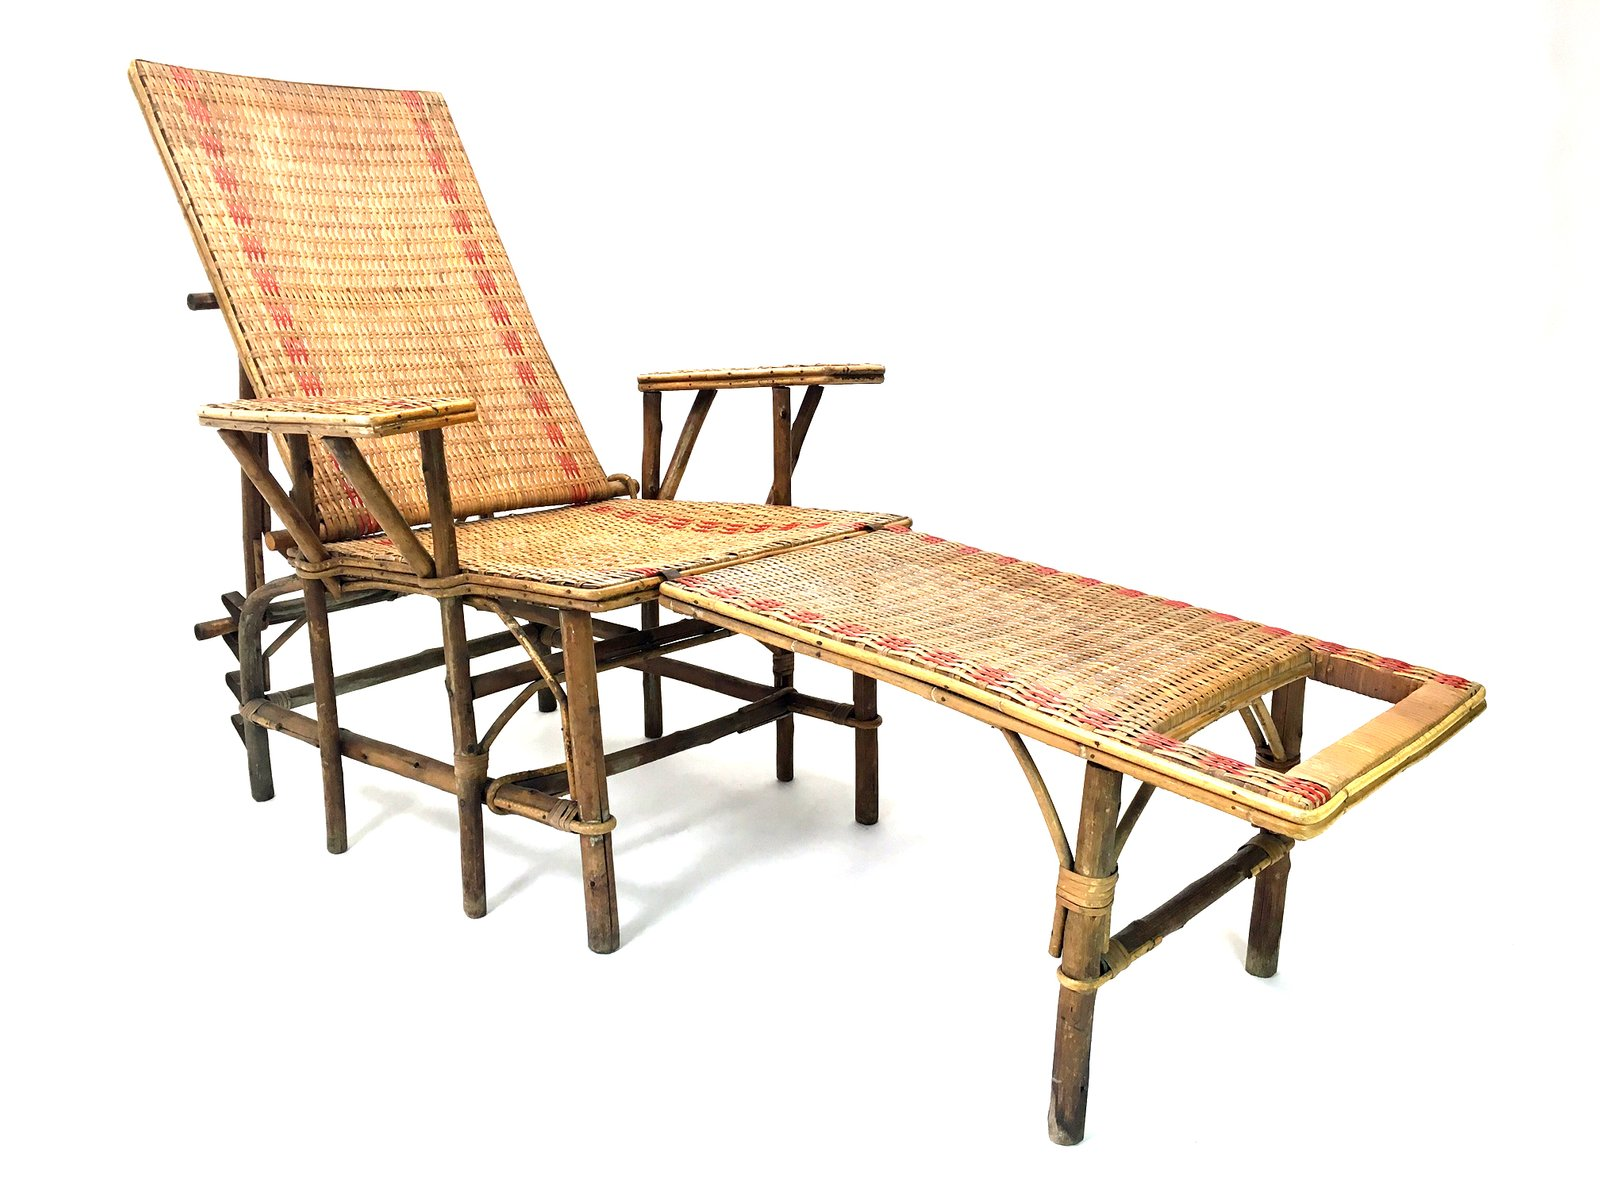 French wicker and bamboo chaise longue with footrest for Chaise longue 2 personnes